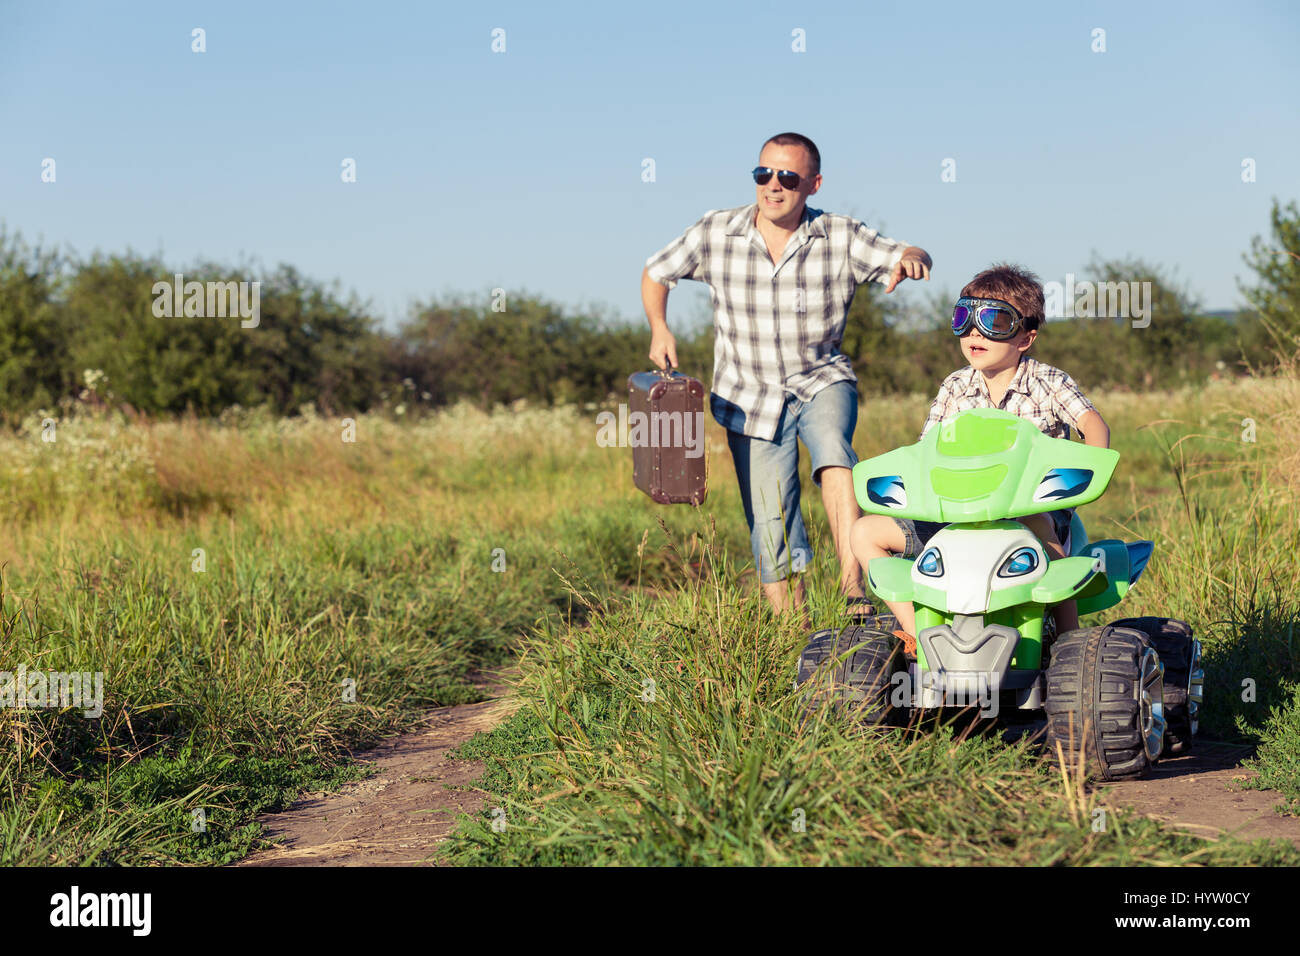 Father and son playing on the road at the day time. They driving on quad bike in the park. People having fun on - Stock Image